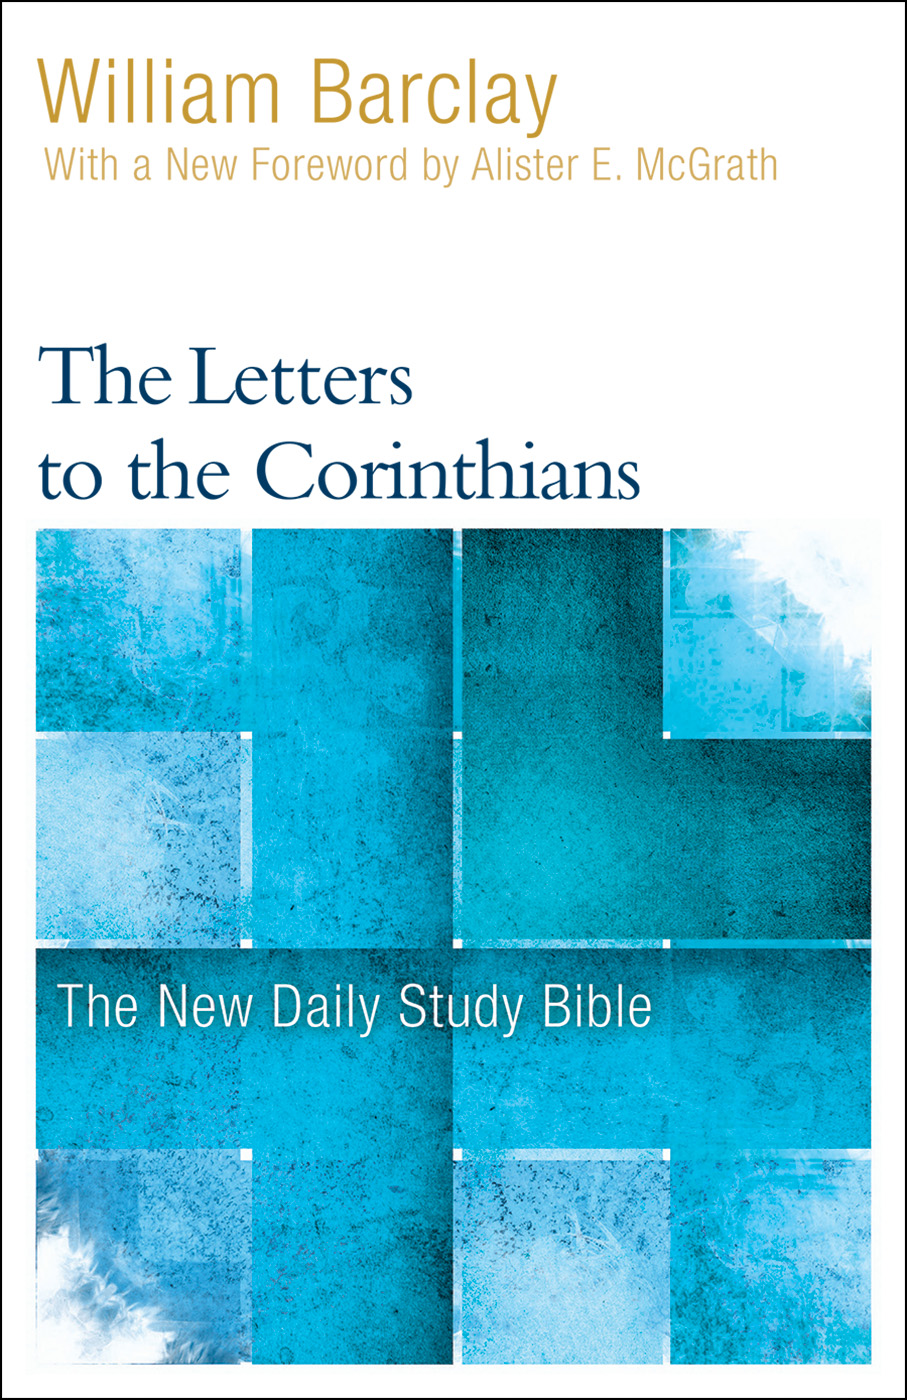 William Barclay's Daily Study Bible by William Barclay